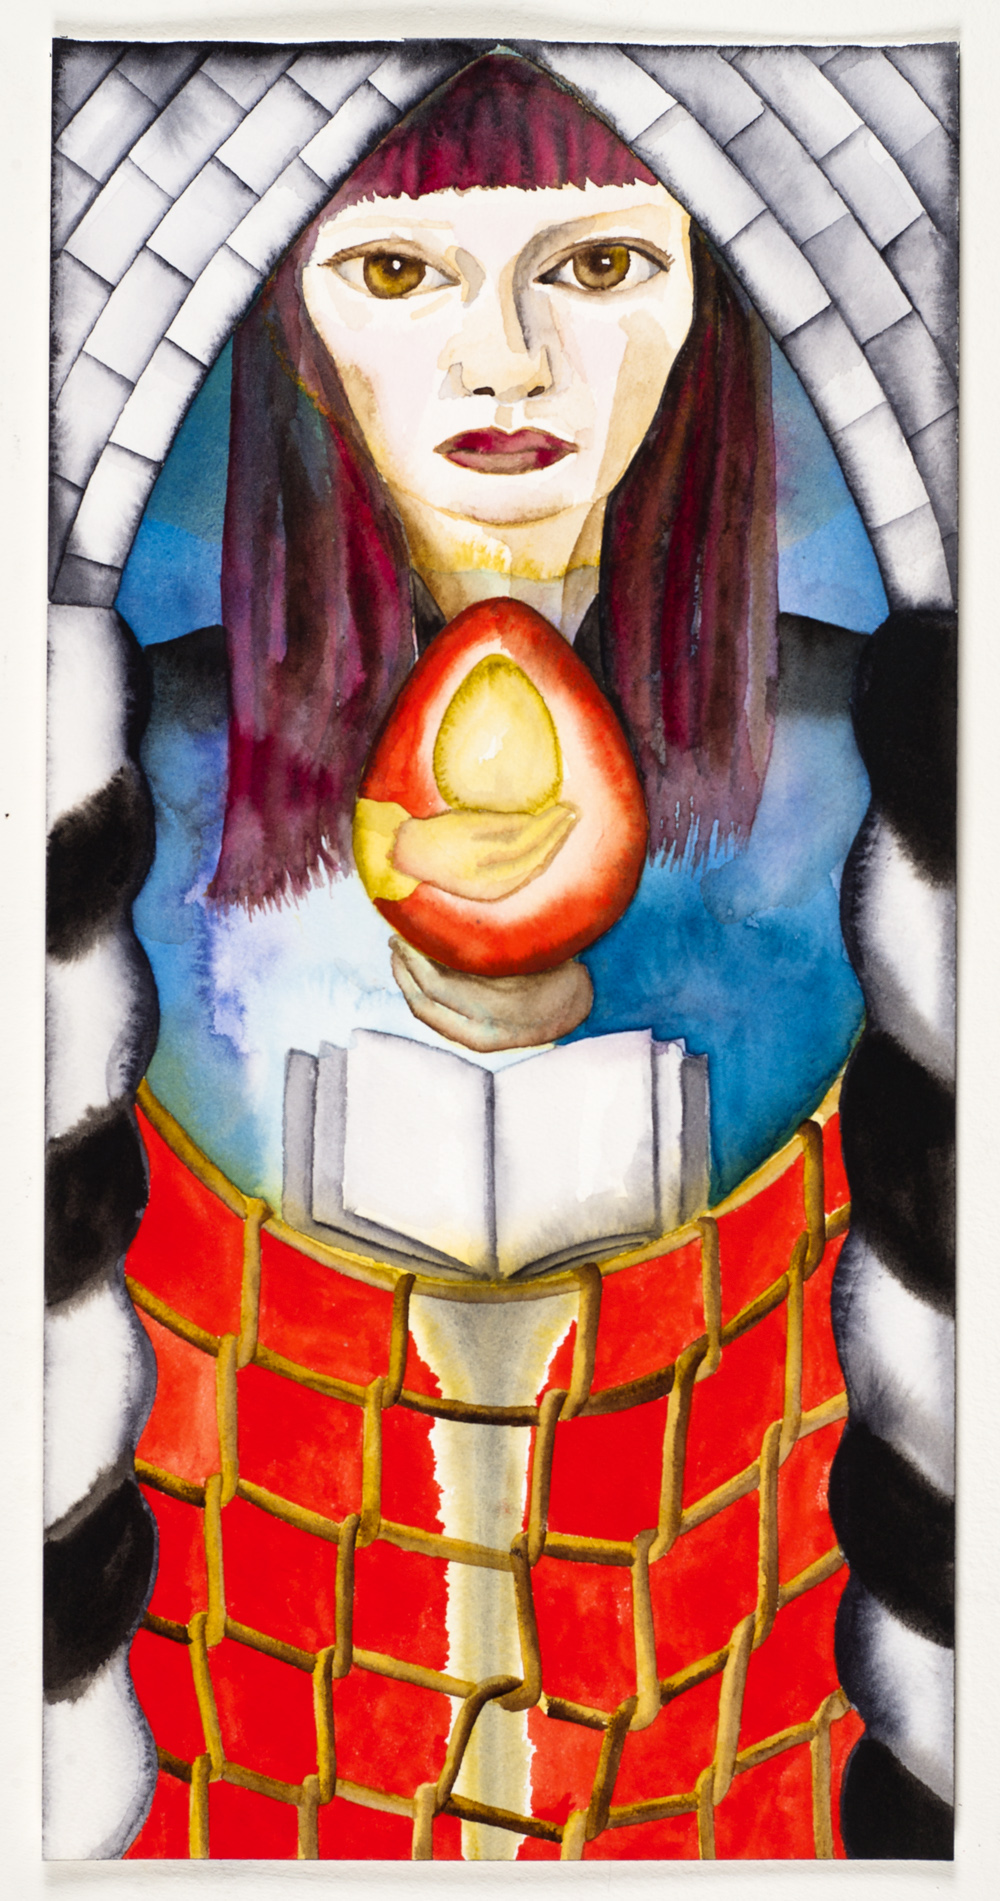 Francesco Clemente Tarot cards: the High Priestess | Art Blart